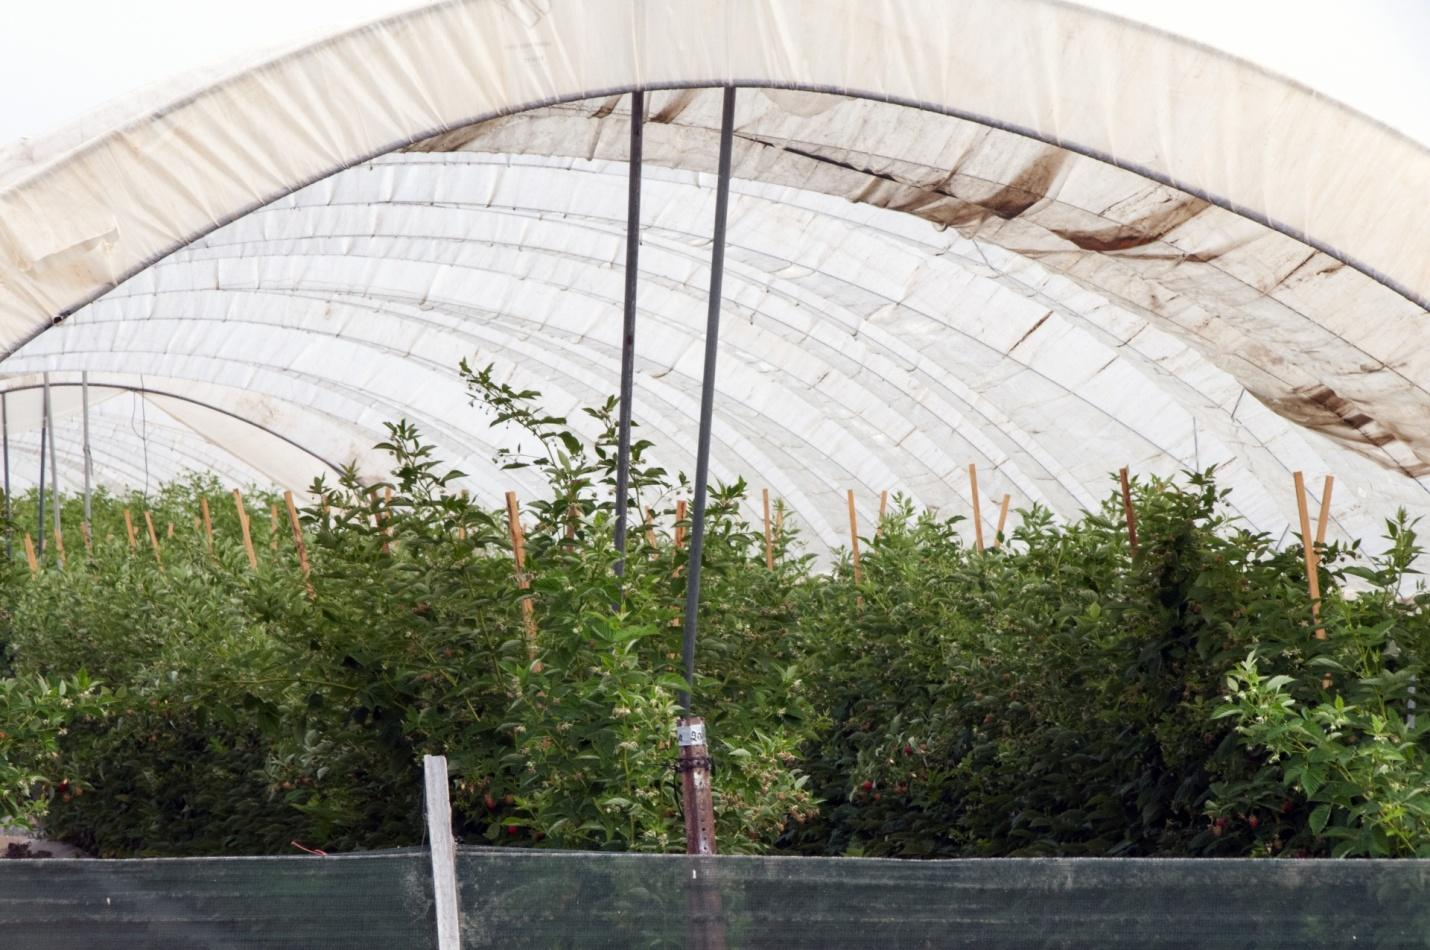 Agriculture Tent Free Stock Photo - Public Domain Pictures